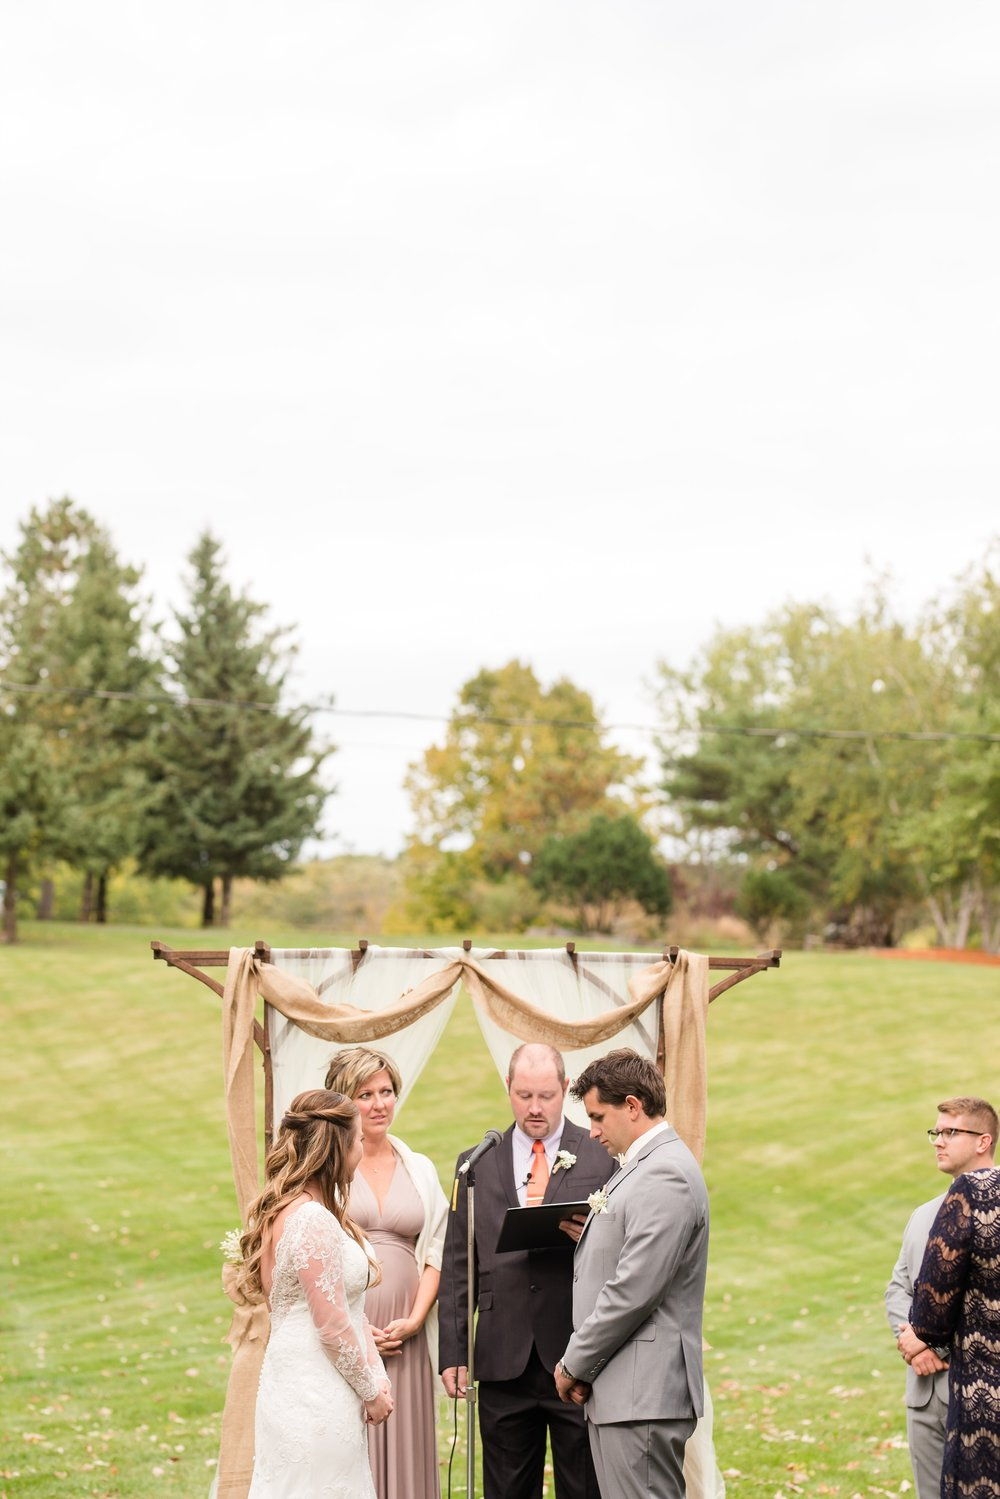 AmberLangerudPhotography_Fair Hills Resort Lakeside Wedding in Minnesota_3462.jpg